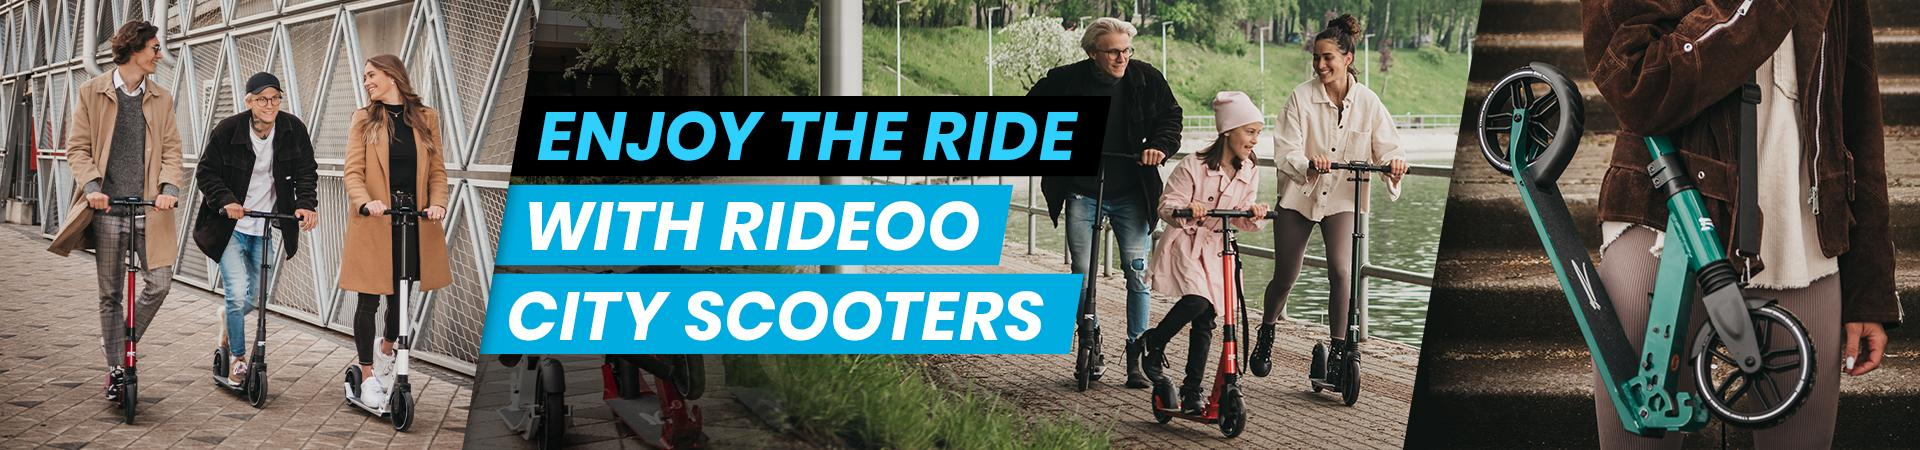 Rideoo City Scooters